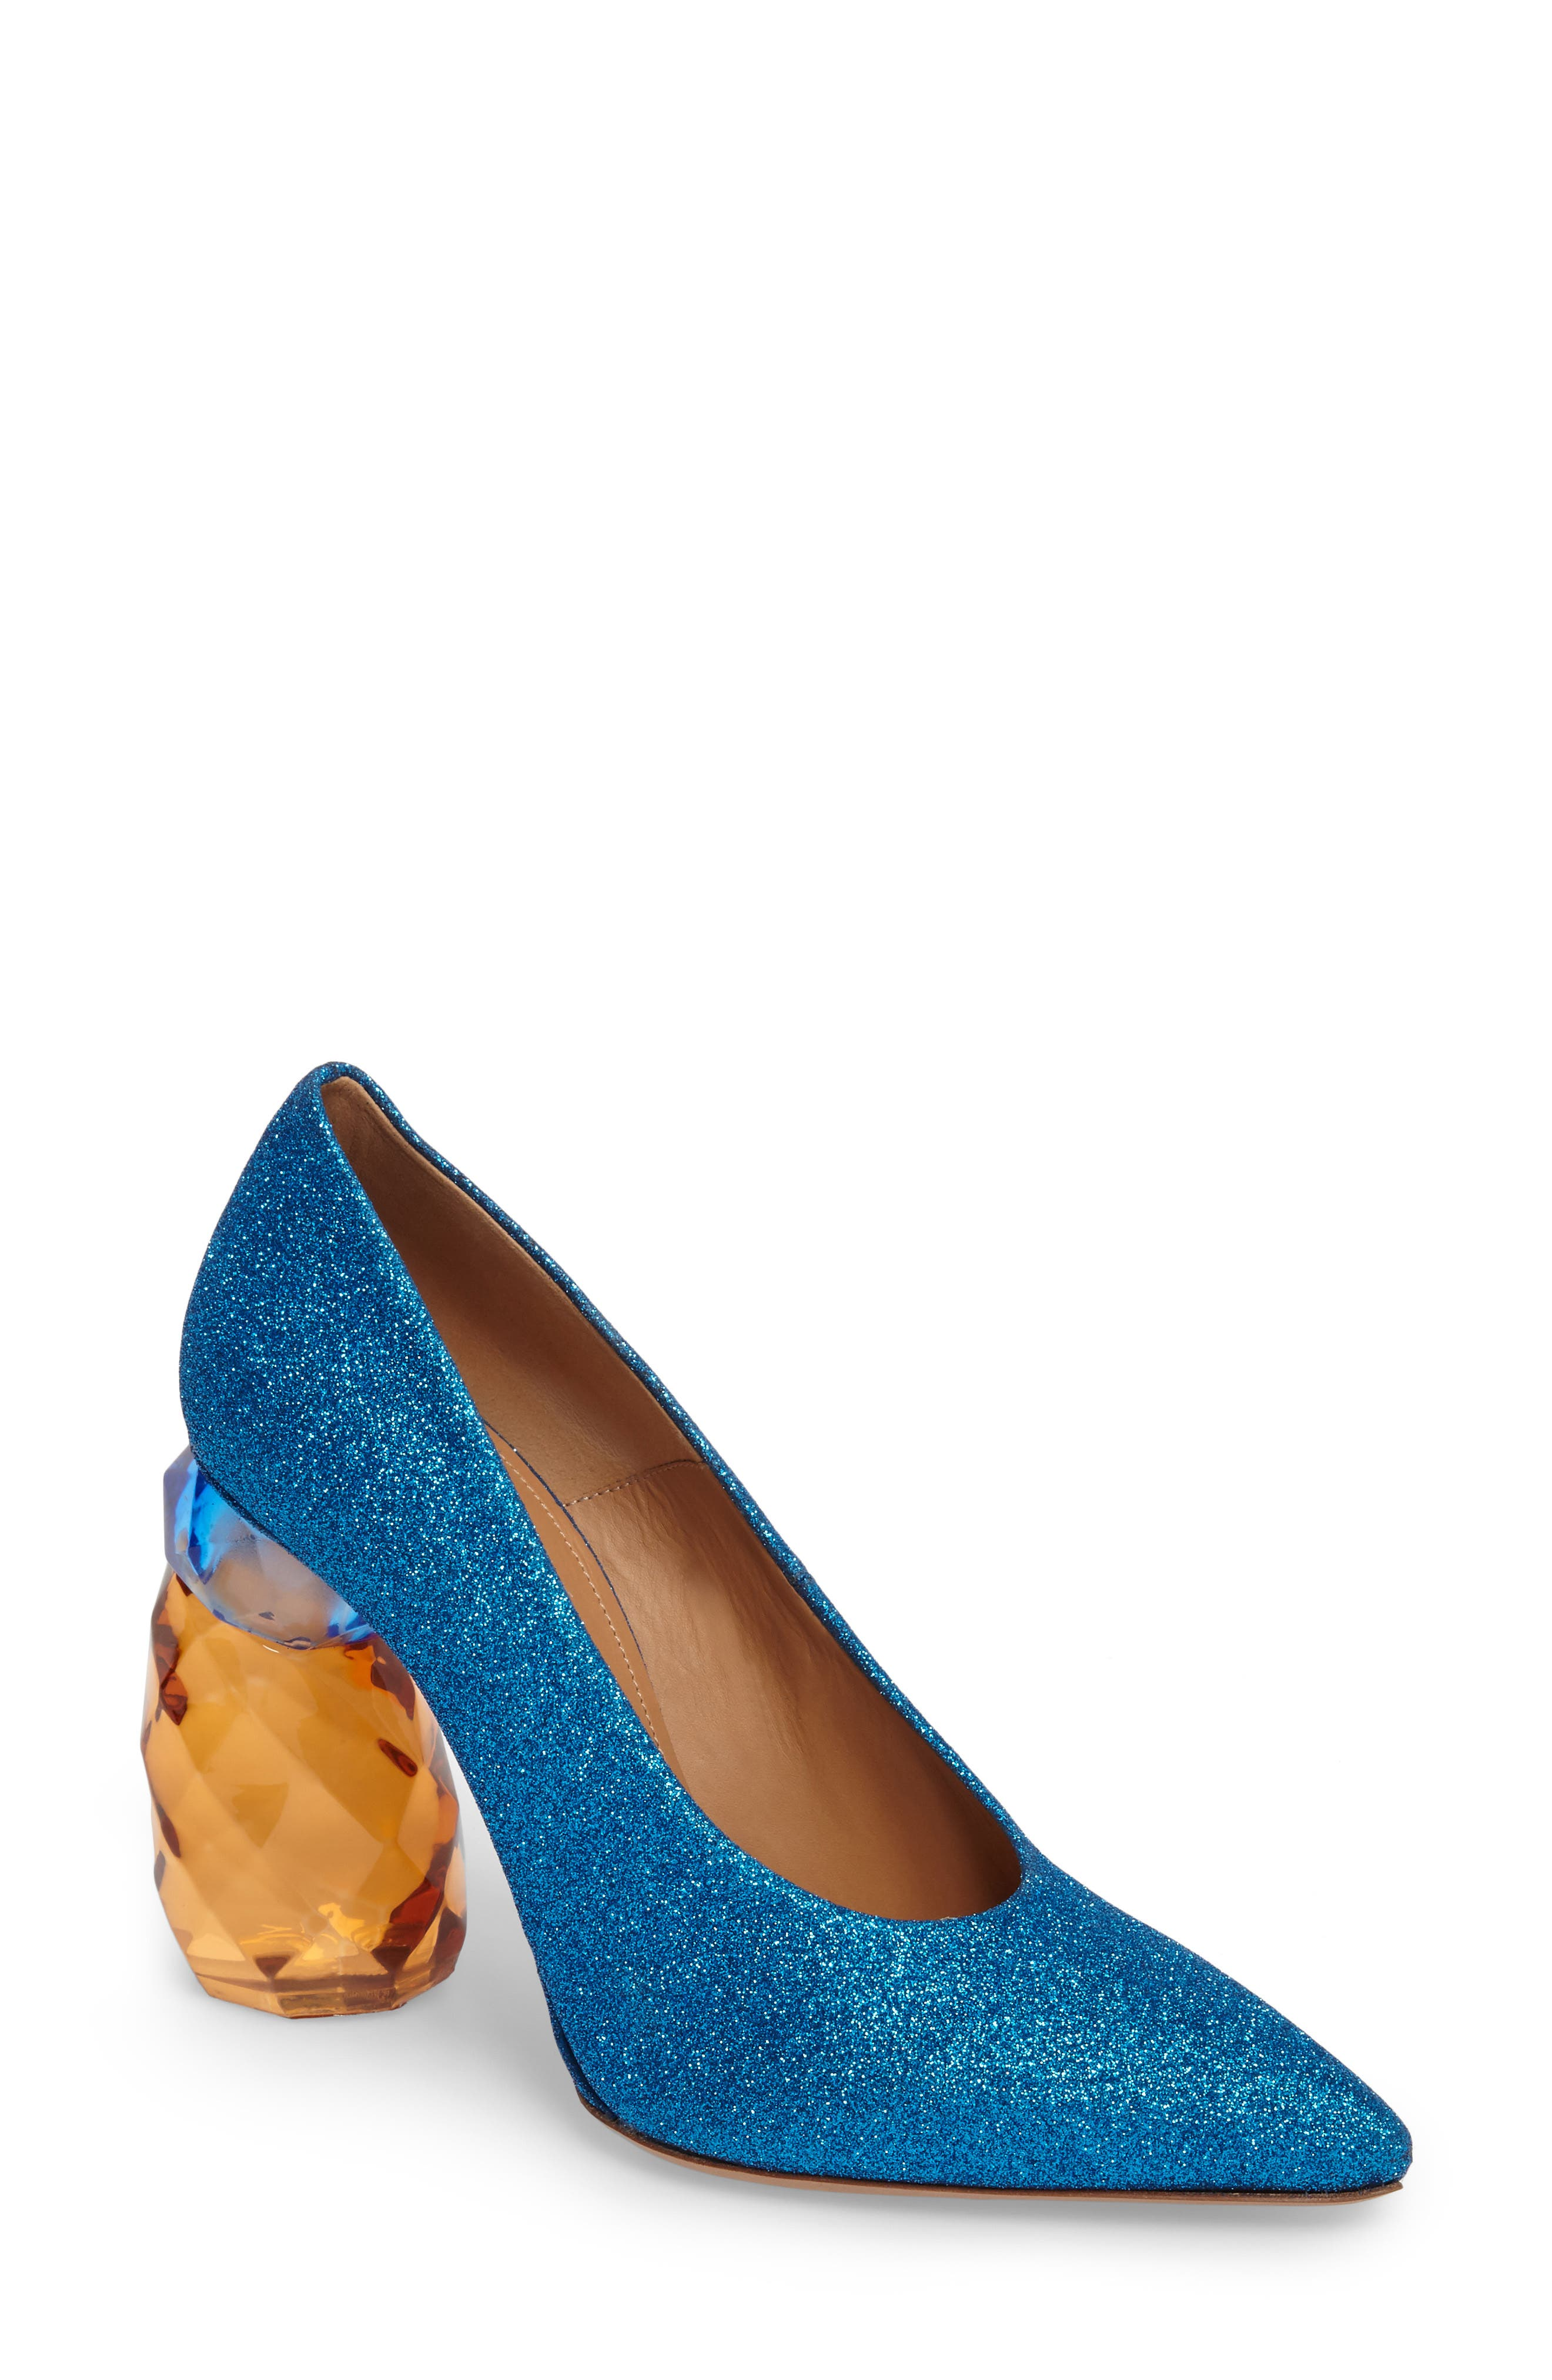 Main Image - Dries Van Noten Jewel Heel Pump (Women)